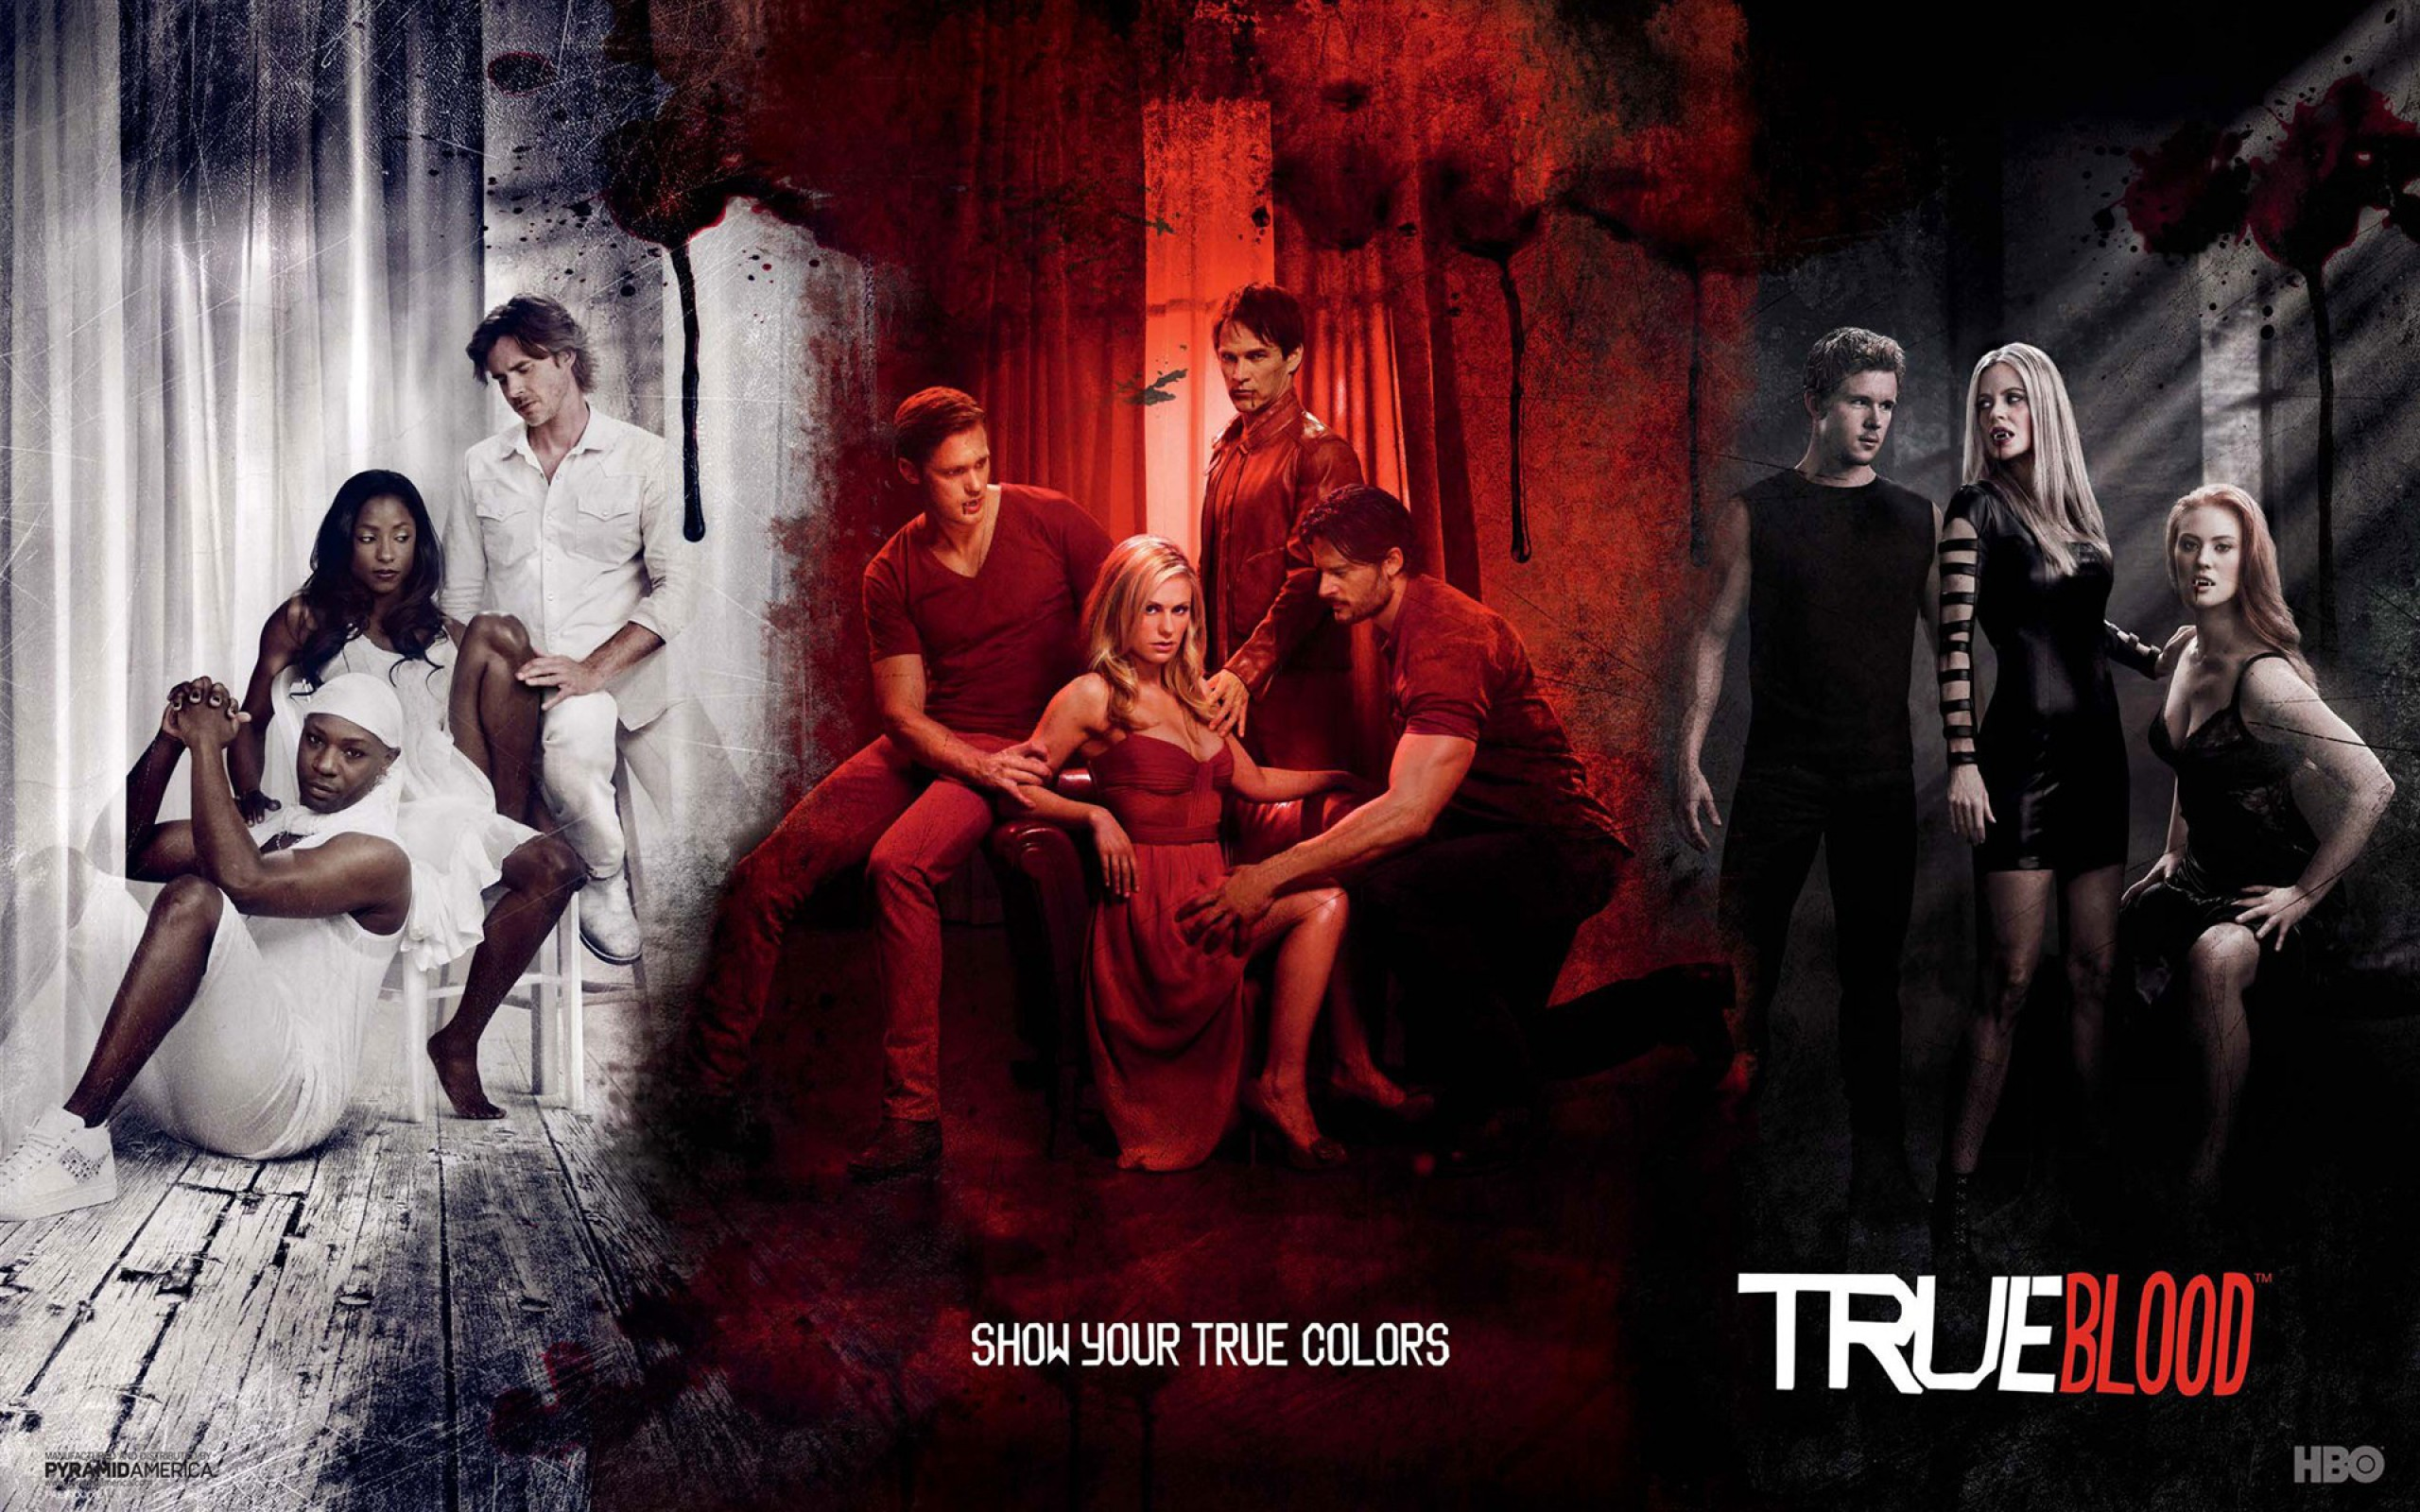 Real Blood Love Wallpaper : True Blood Wallpapers, Pictures, Images